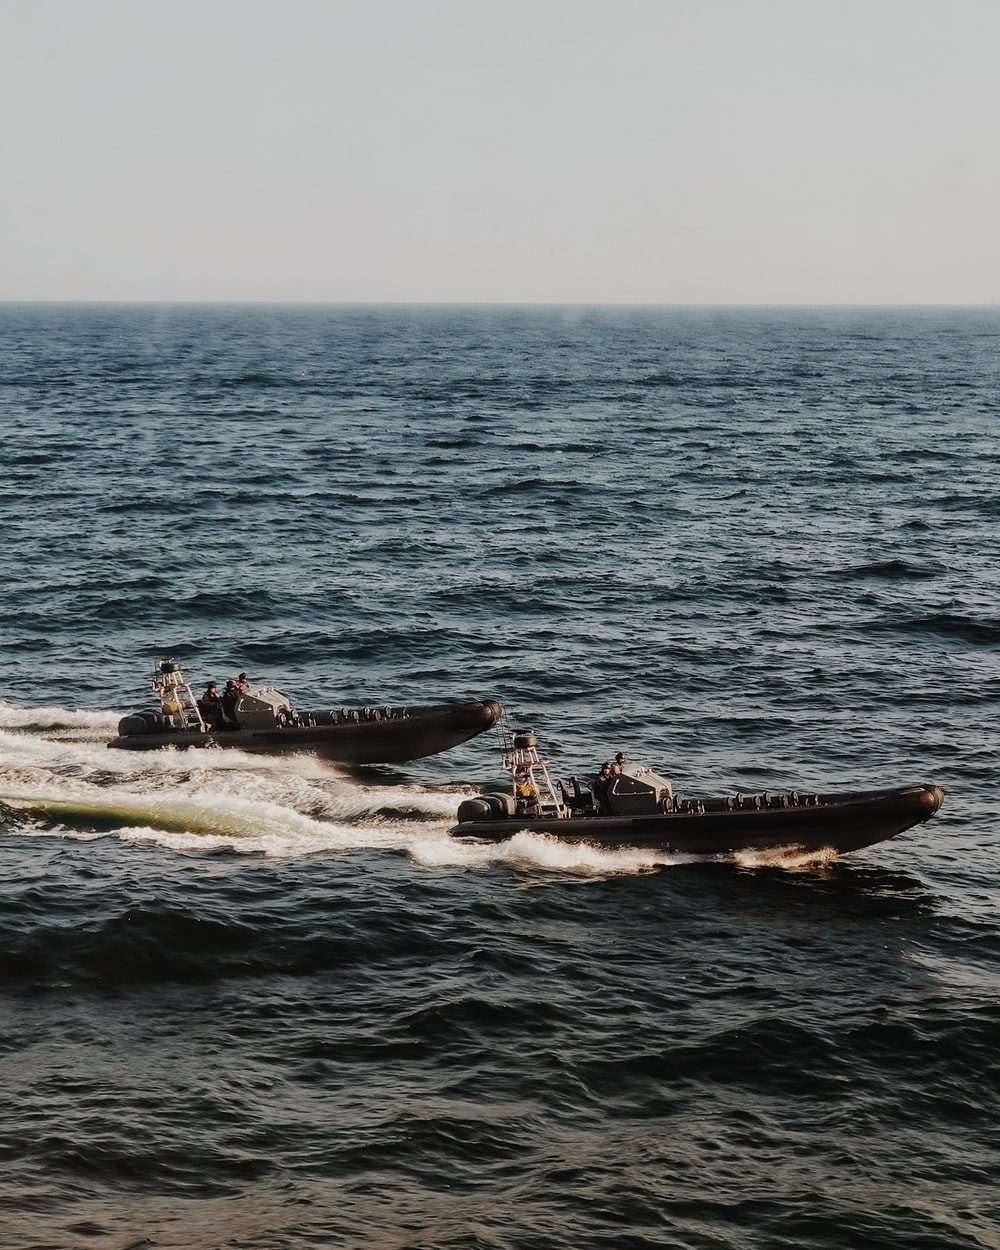 people riding on white and black boat on sea during daytime